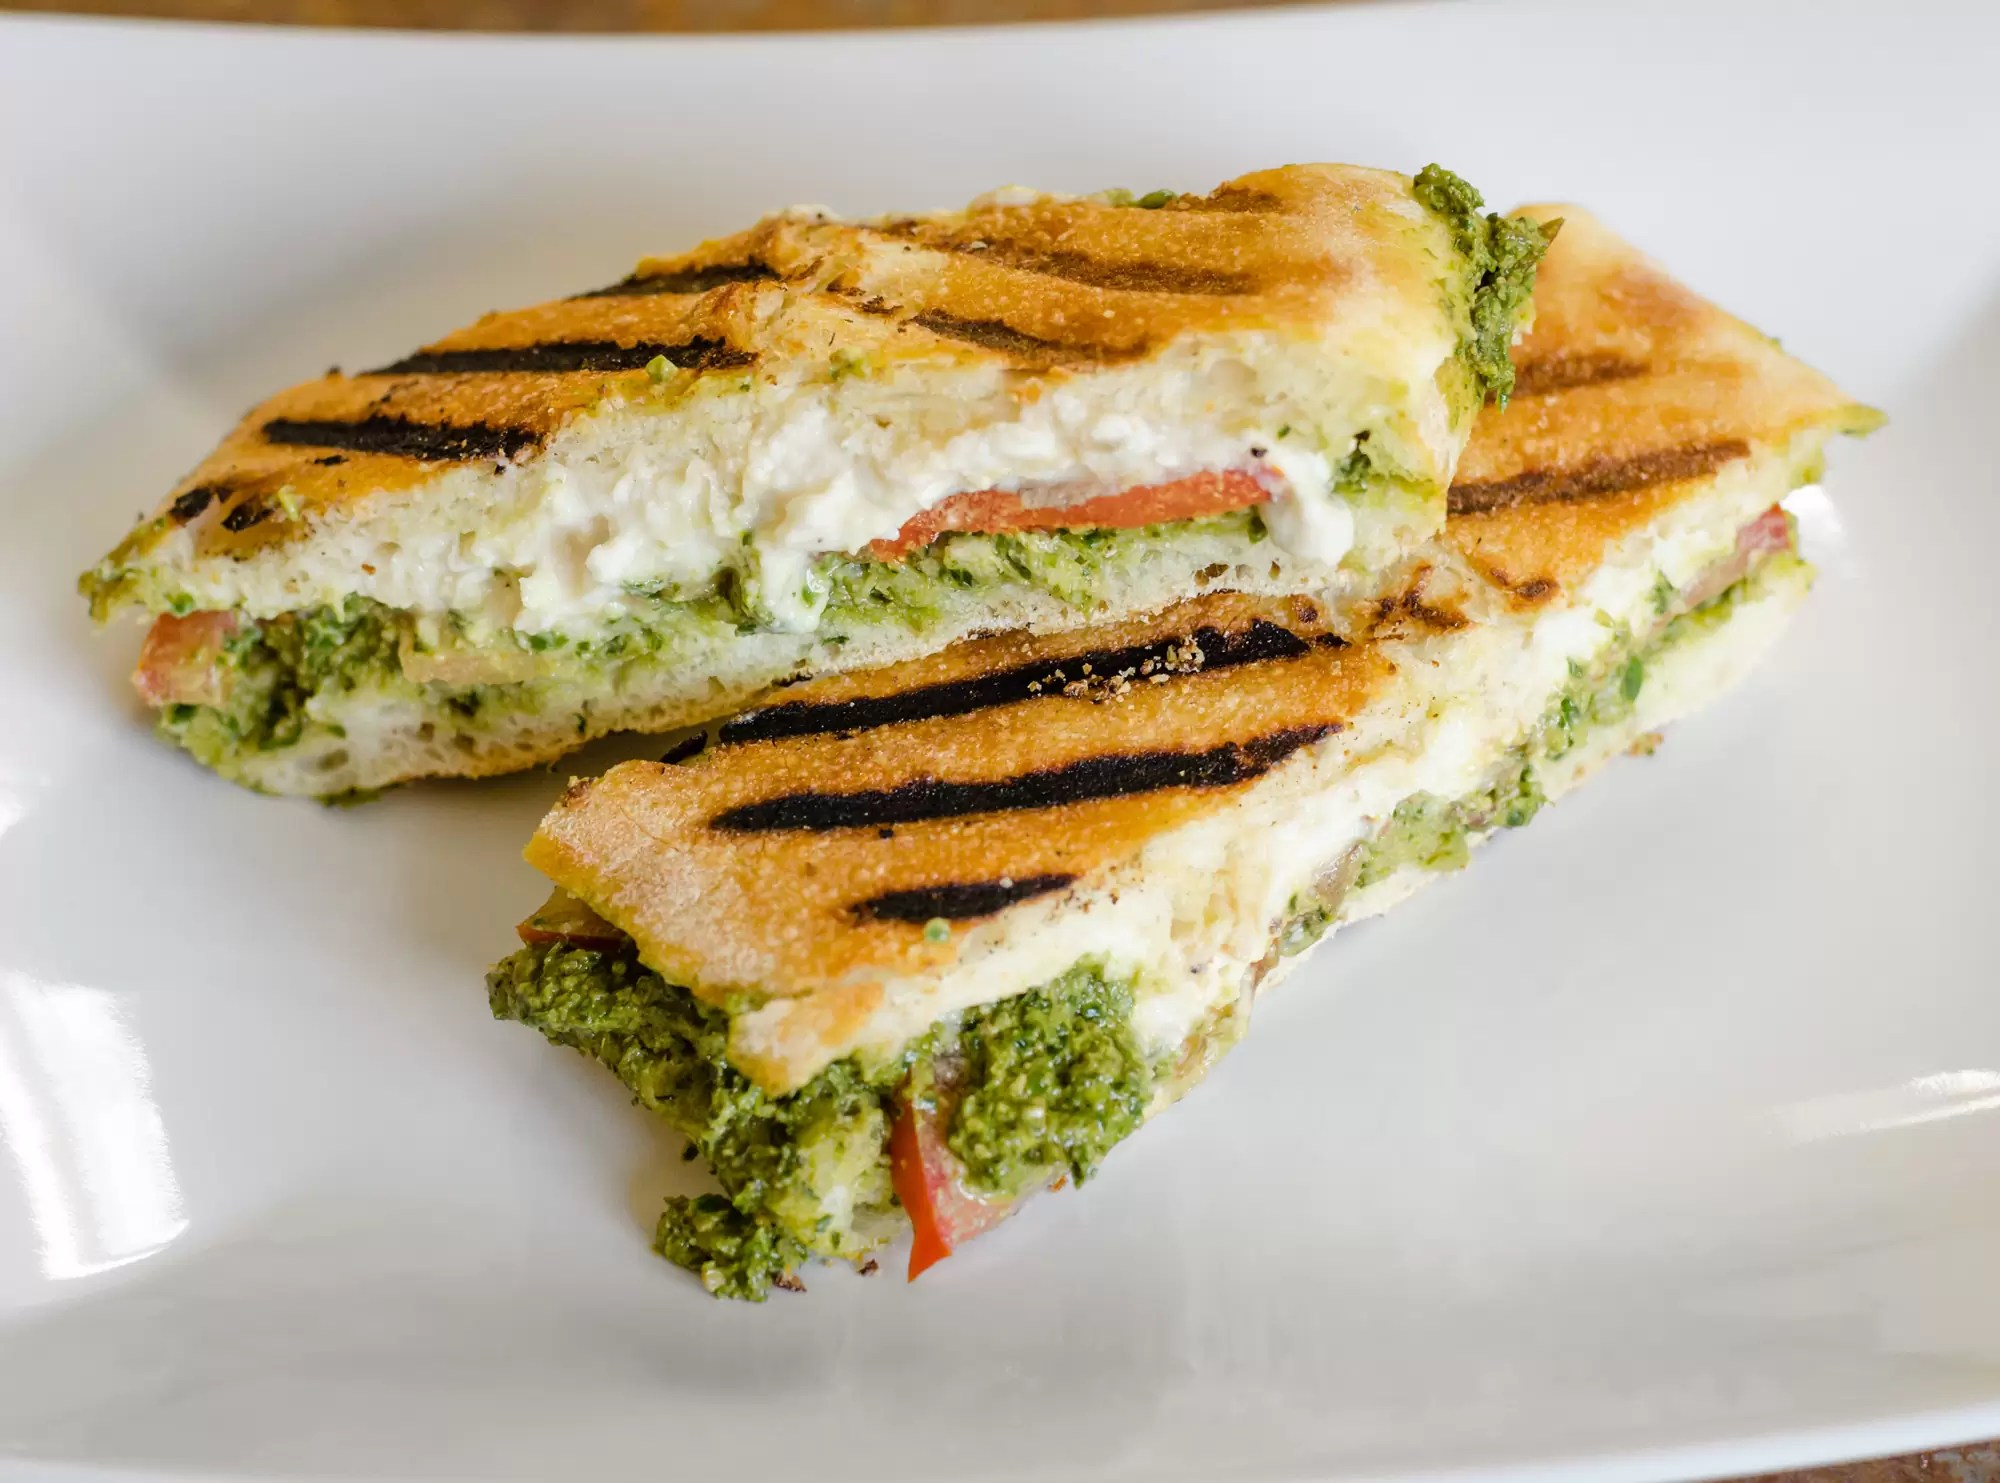 Vegan Pesto Panini Sandwich